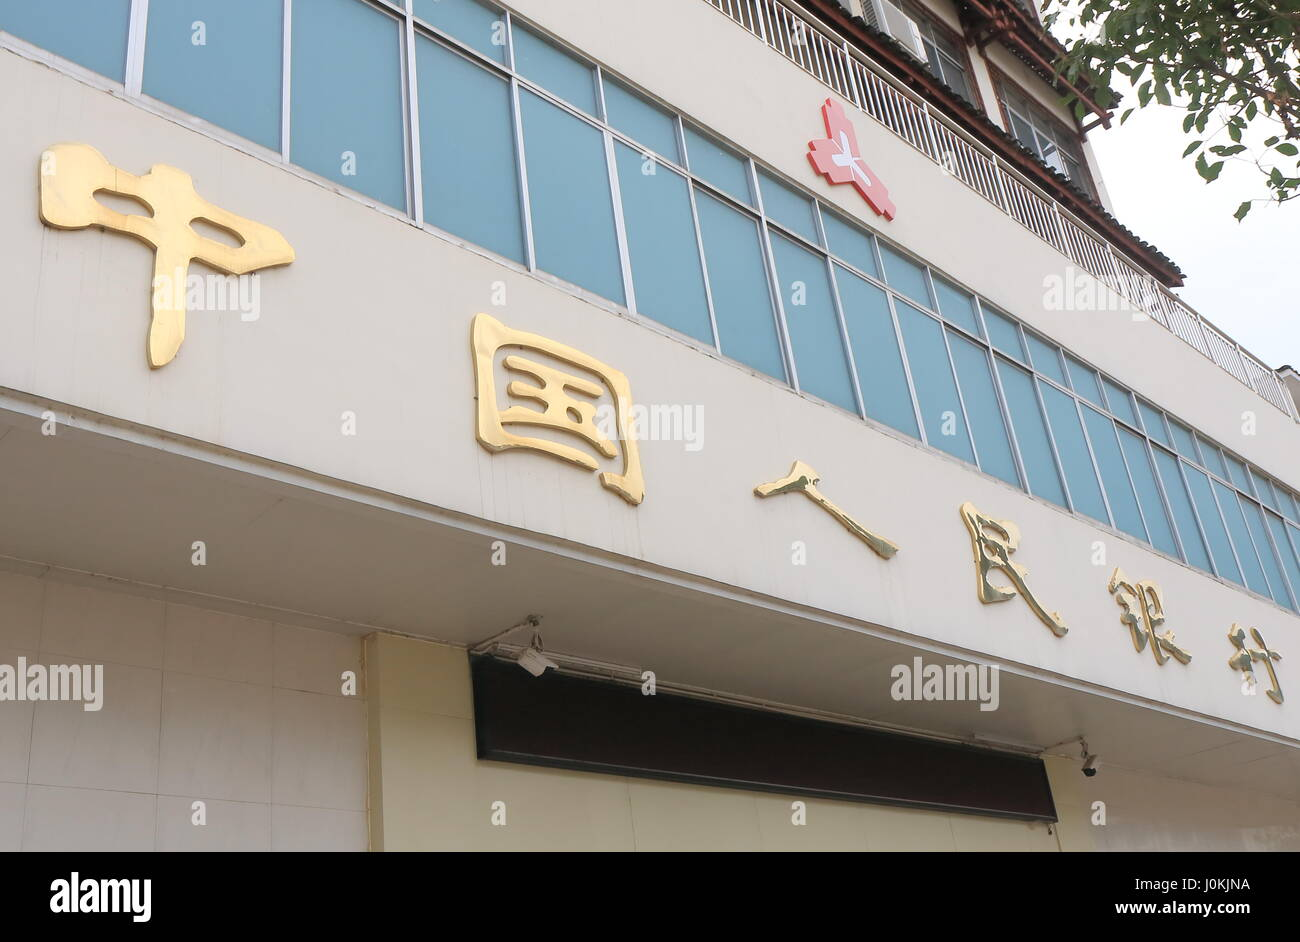 People's bank of China. People's bank of China is the central bank of China responsible for monetary policy - Stock Image